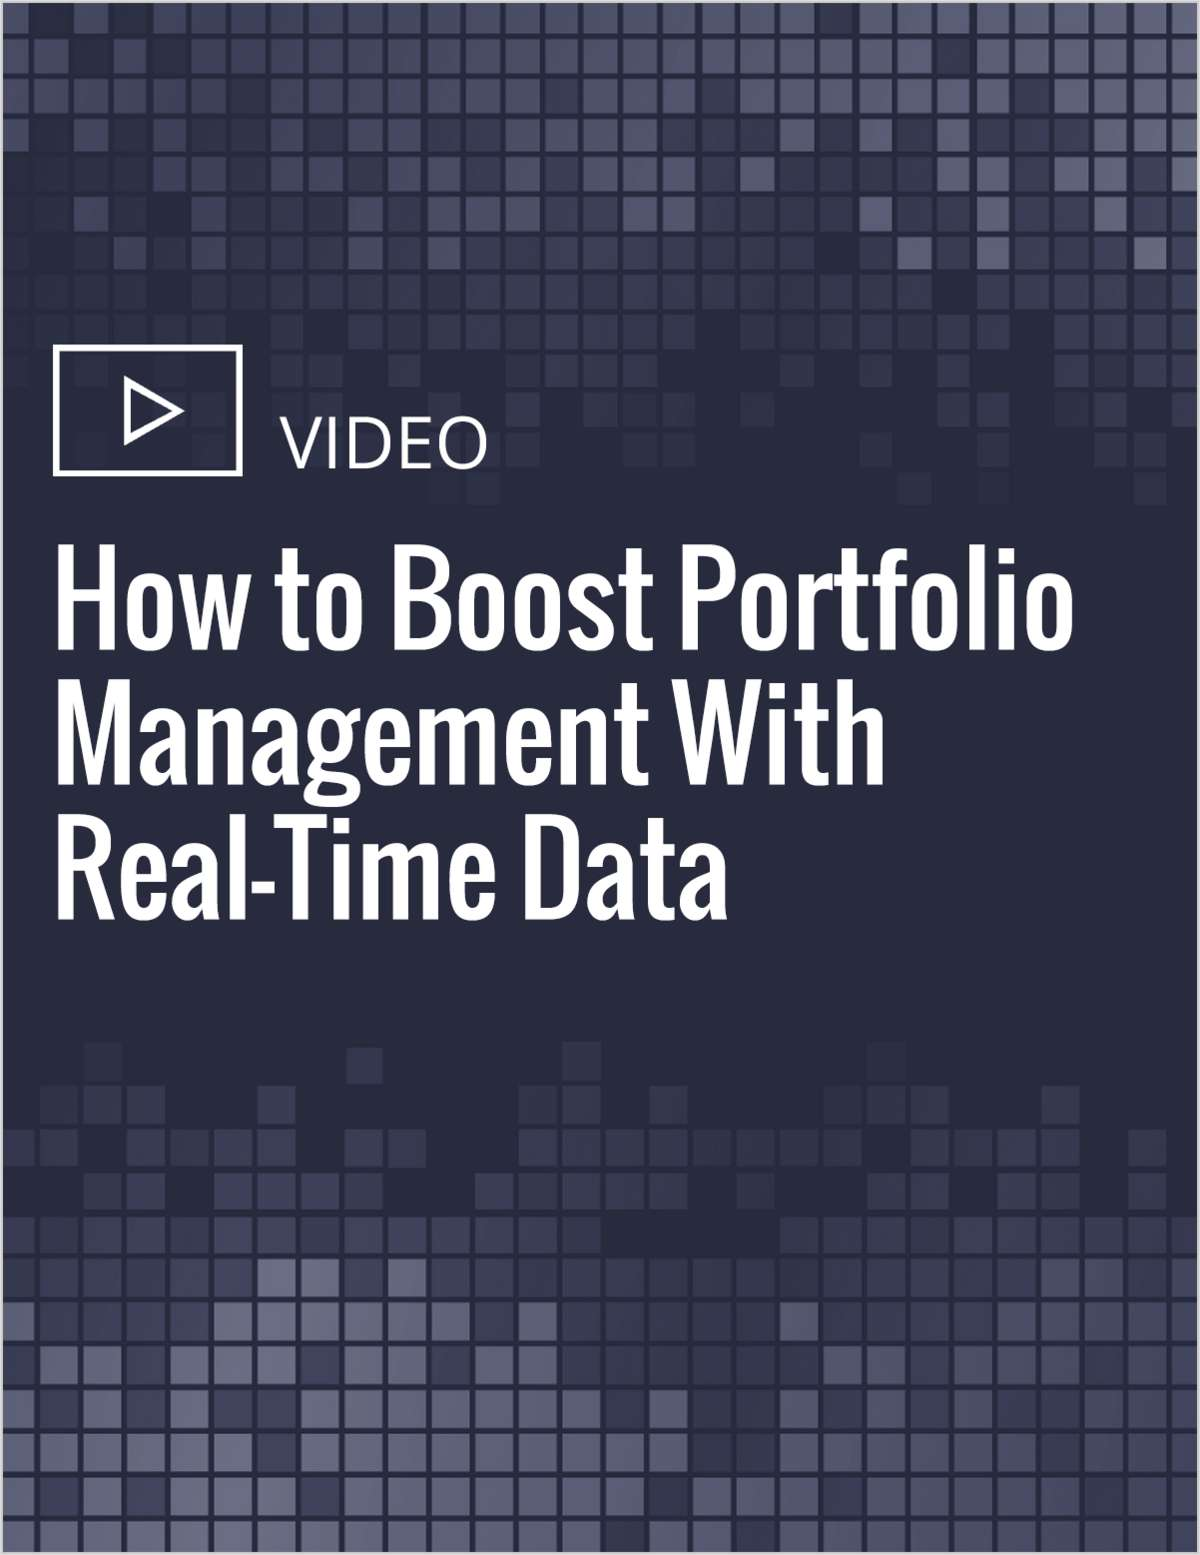 How to Boost Portfolio Management With Real-Time Data